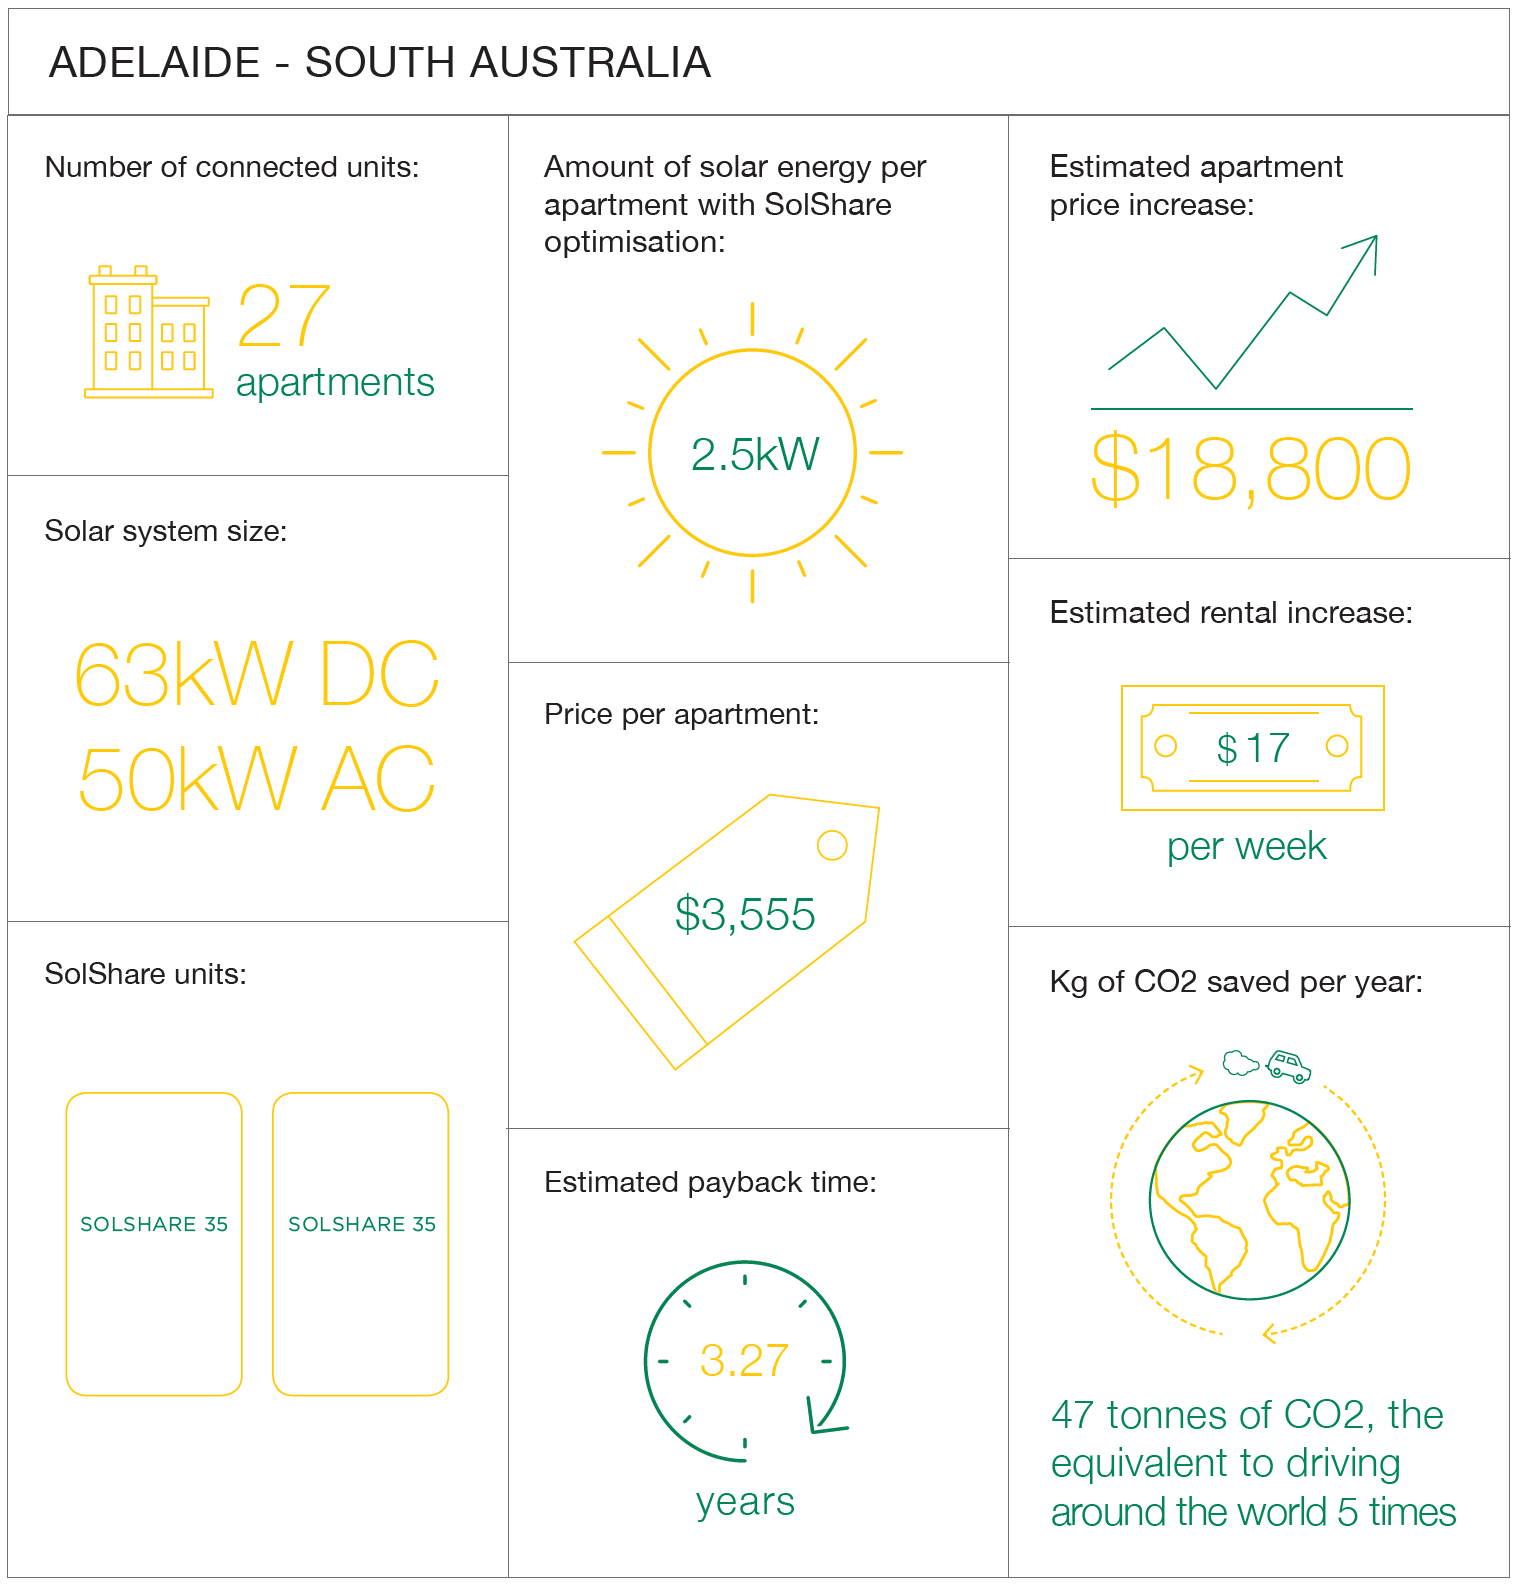 Graphic Representation of the Details of the SolShare Case Study in Adelaide, South Australia